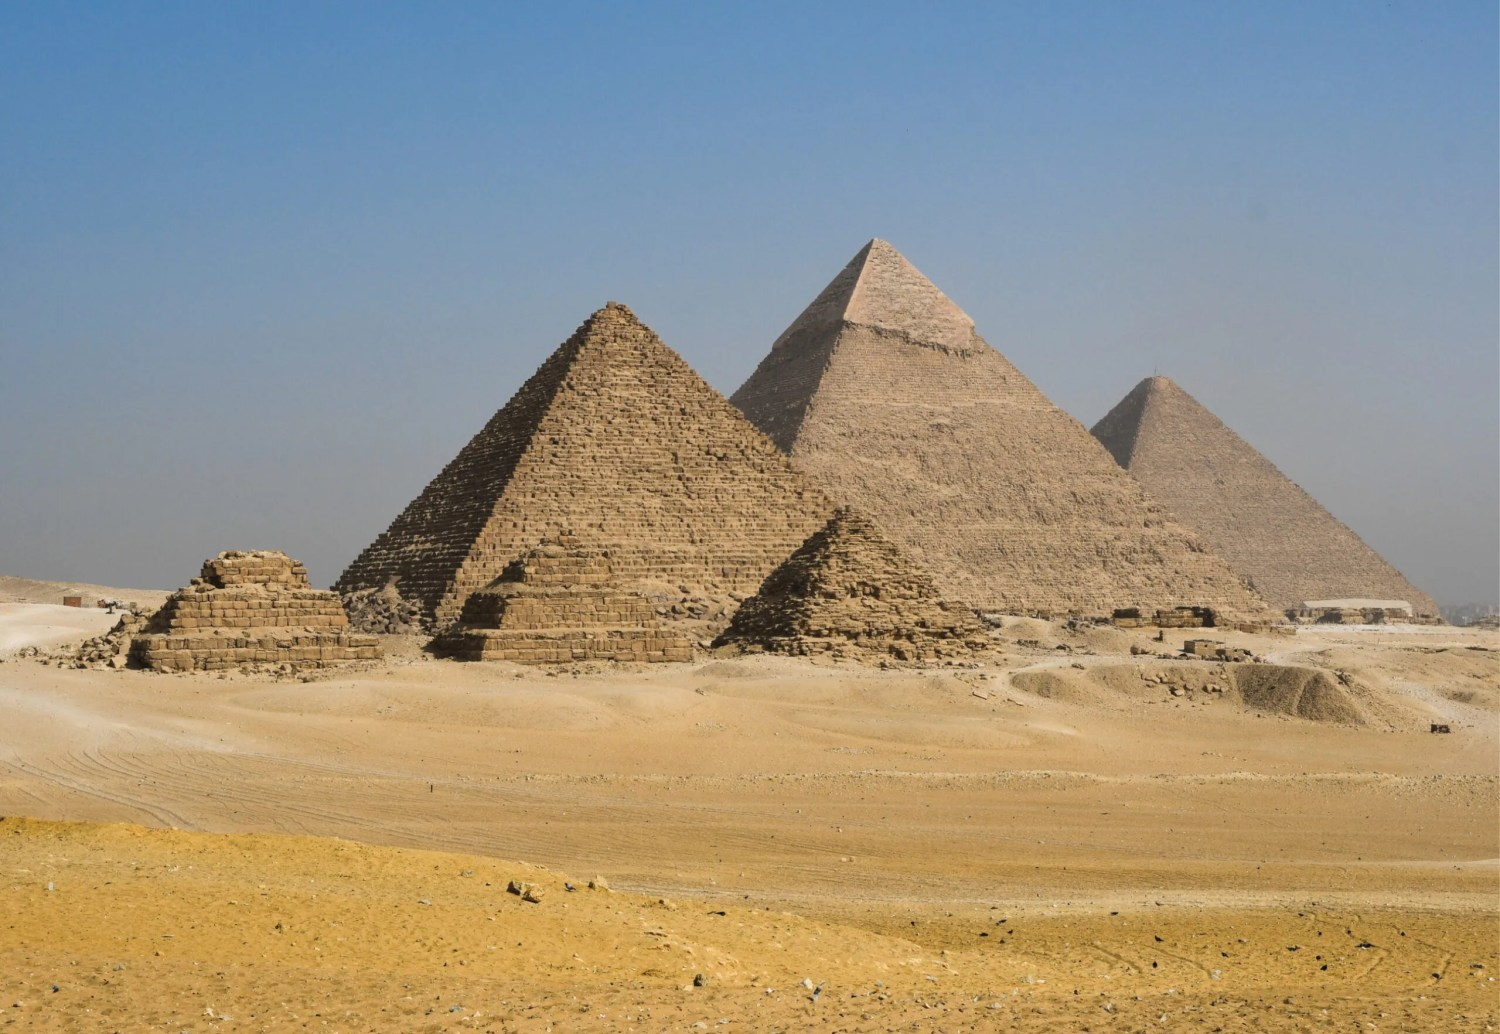 above The pyramids at Giza. Of the three large pyramids, that closest